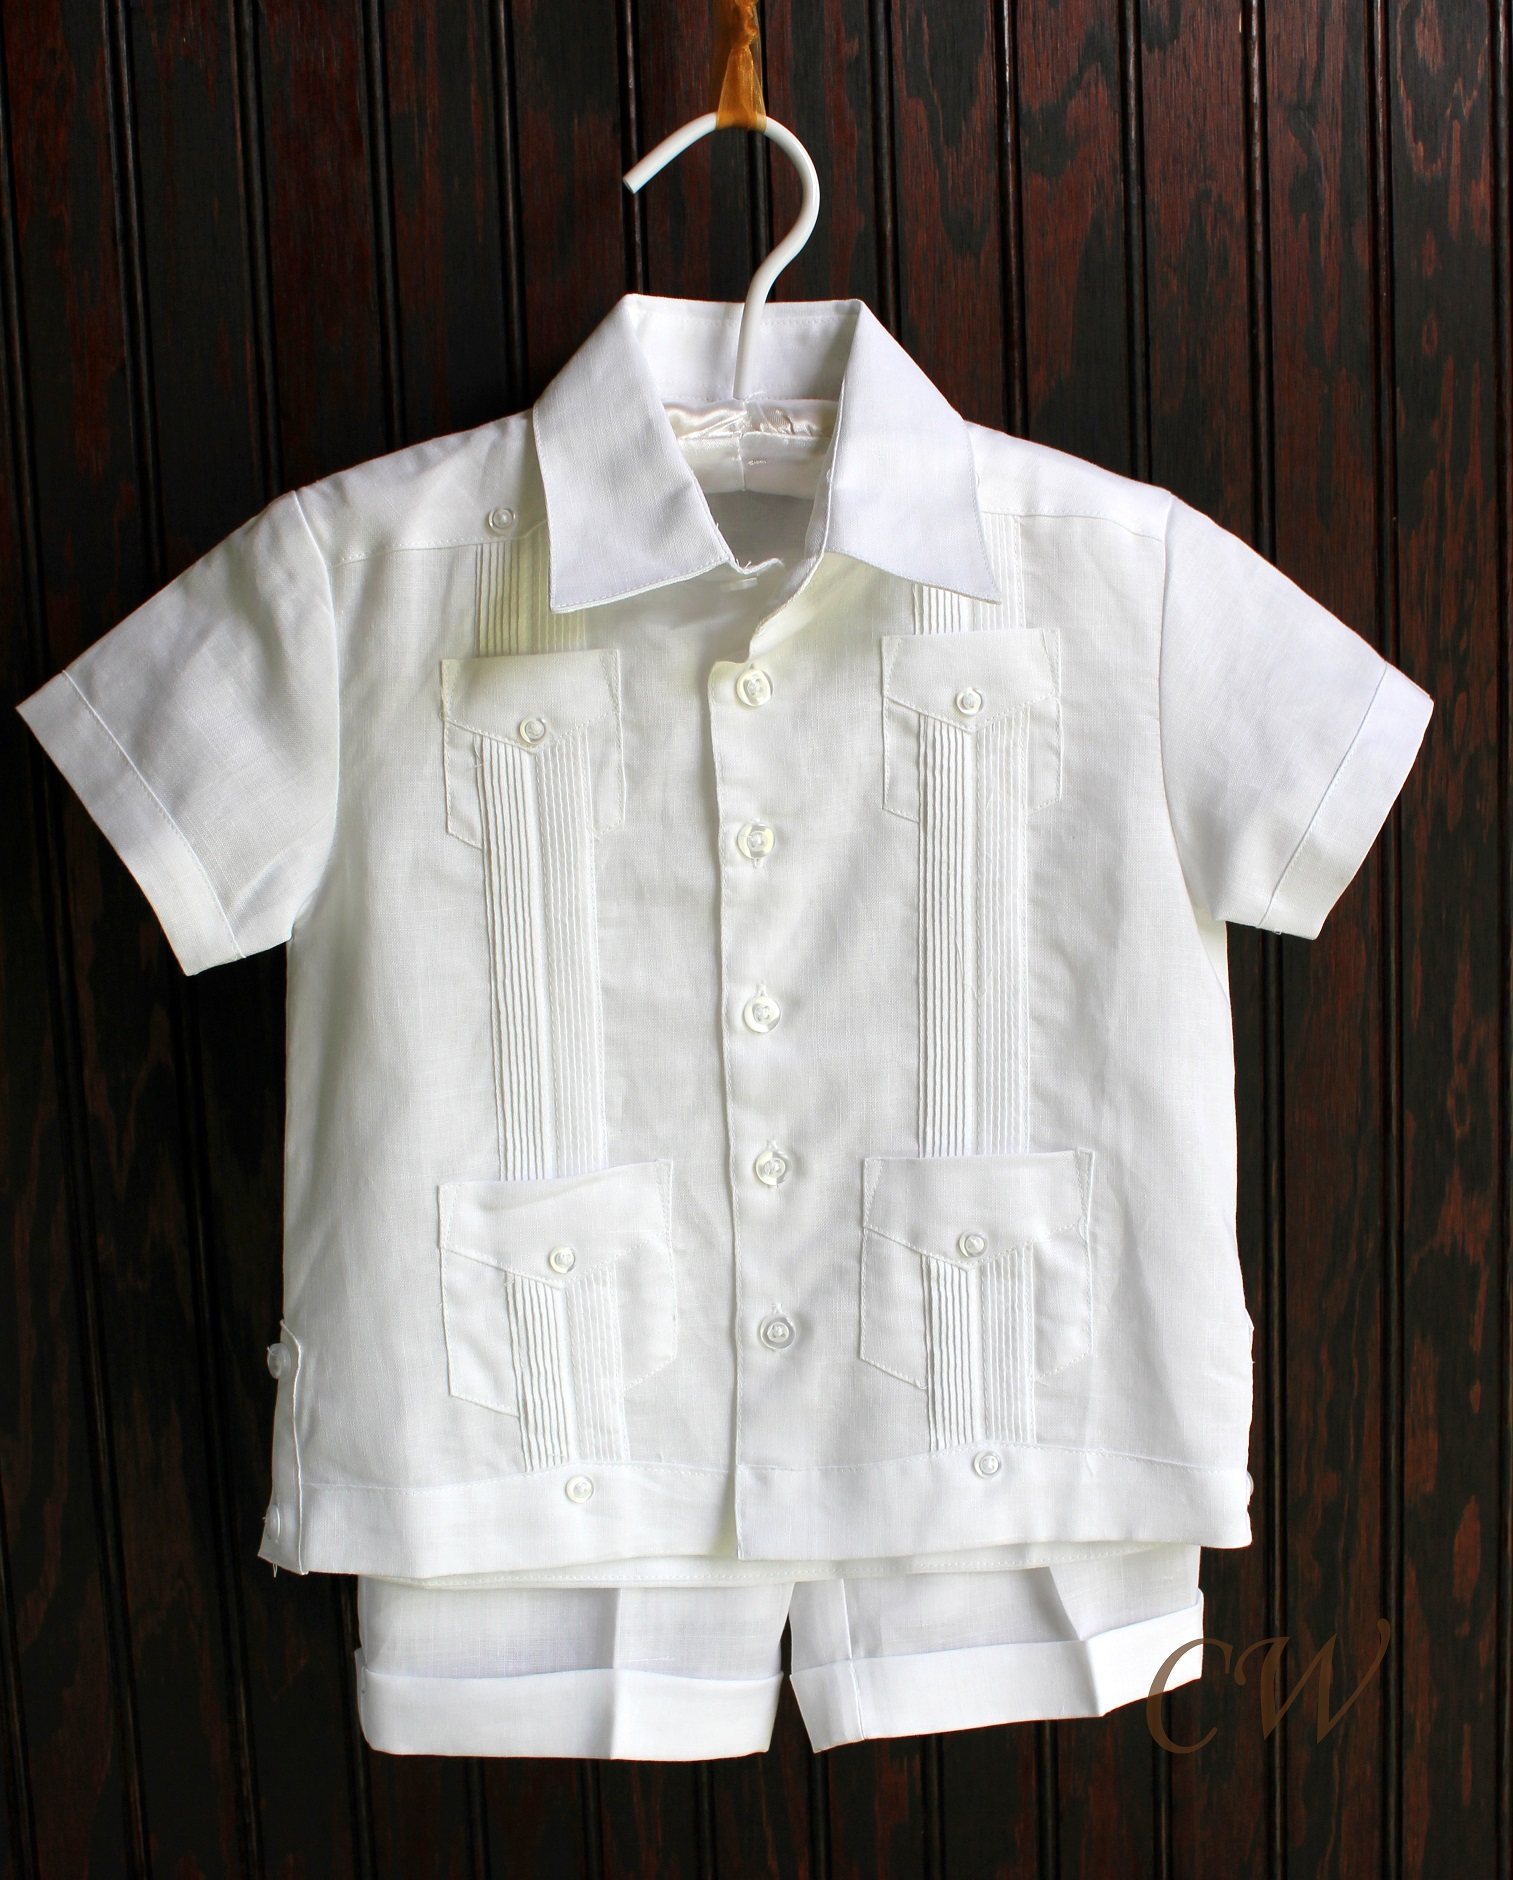 guayaberas for kids are now available to online consumers